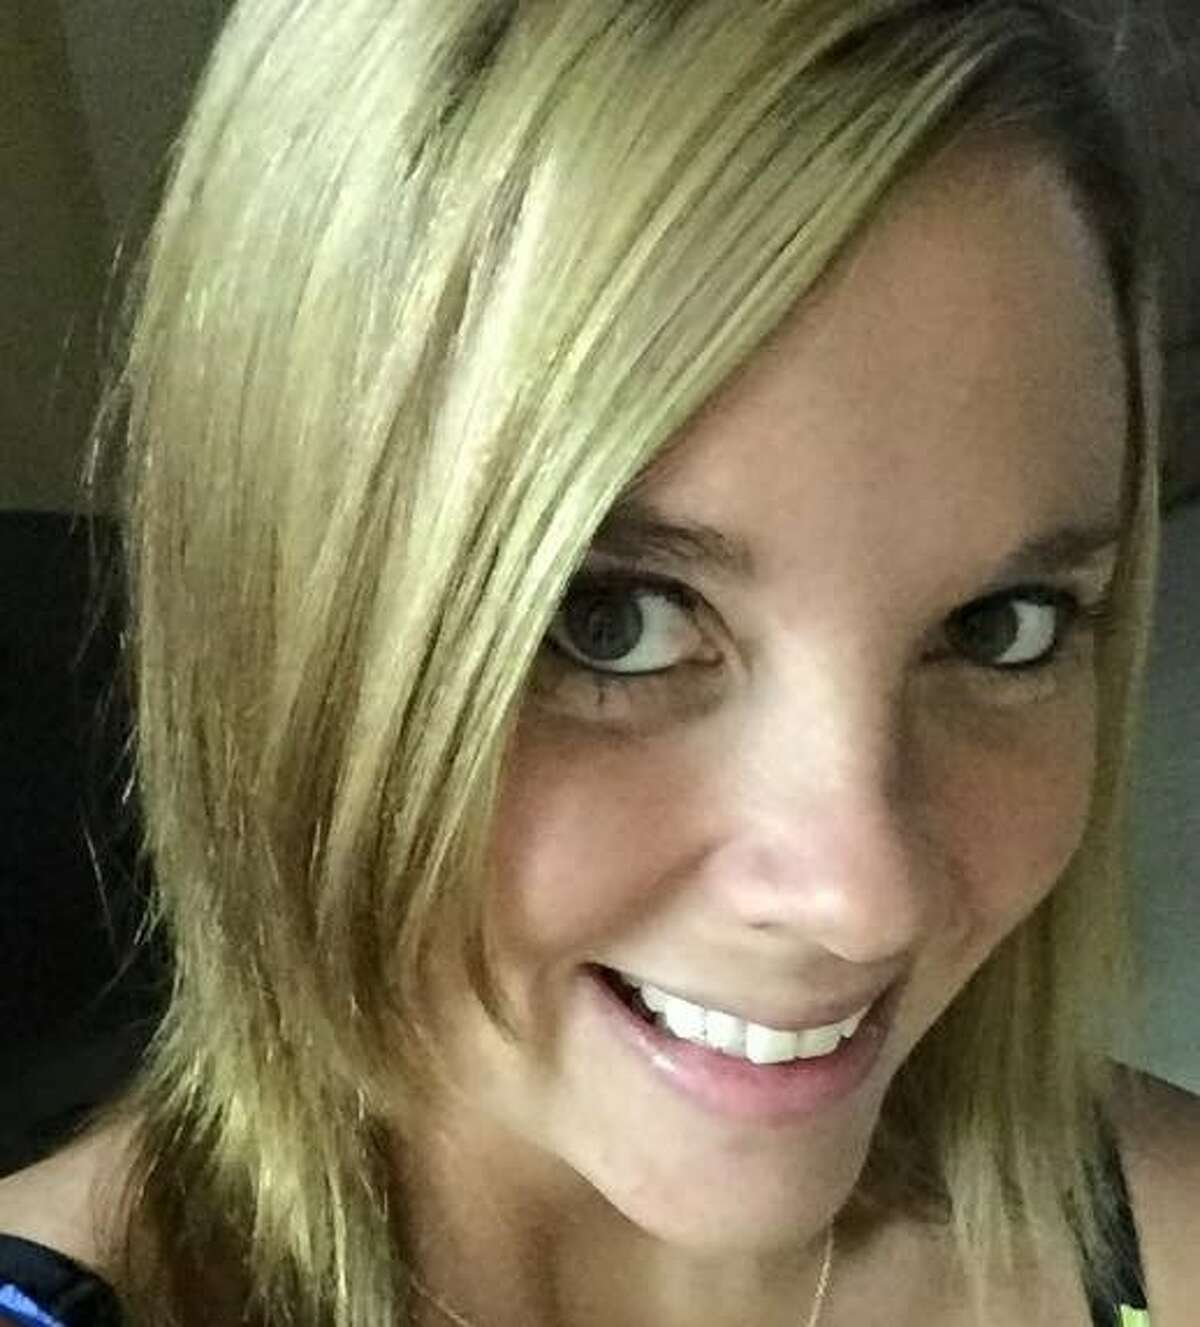 Melanie Sue Voss, 31, was last seen on April 3 sitting on a park bench in the Texas Medical Center area.